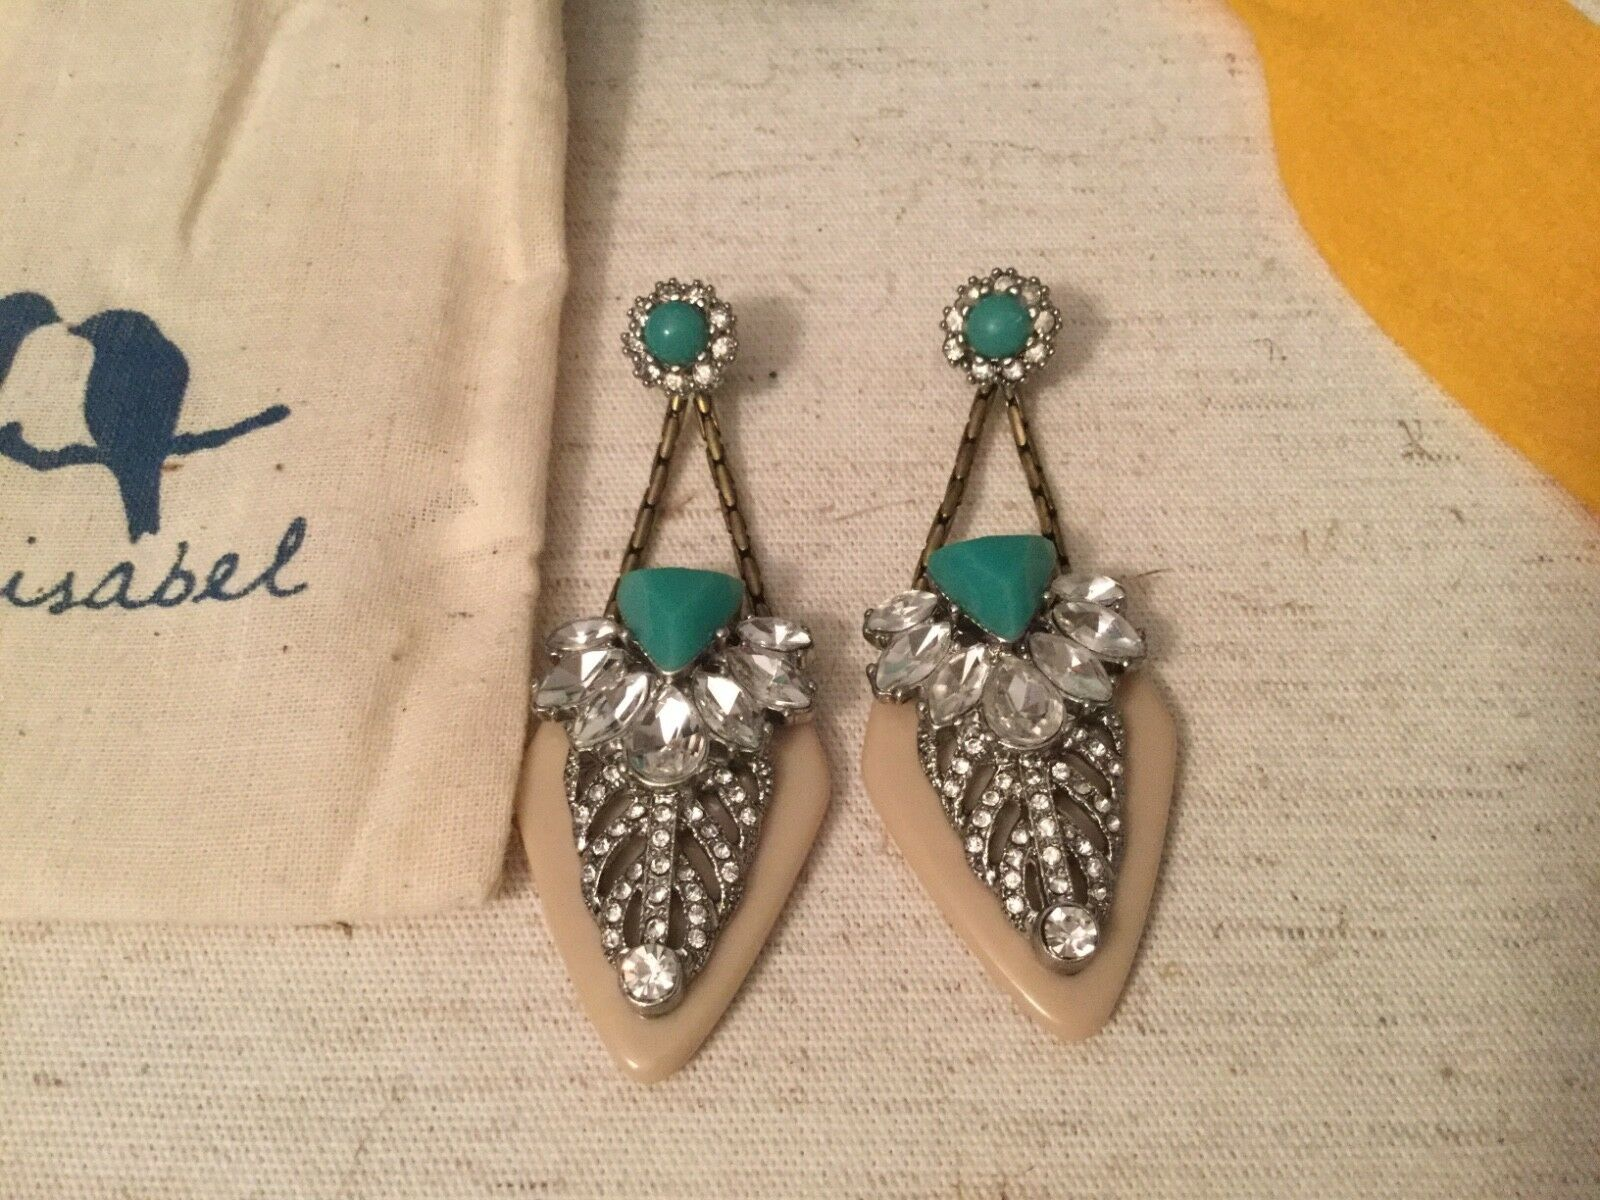 Chloe + Isabel Palm Royale Congreenible Statement Earrings E252 Rare New in Bag